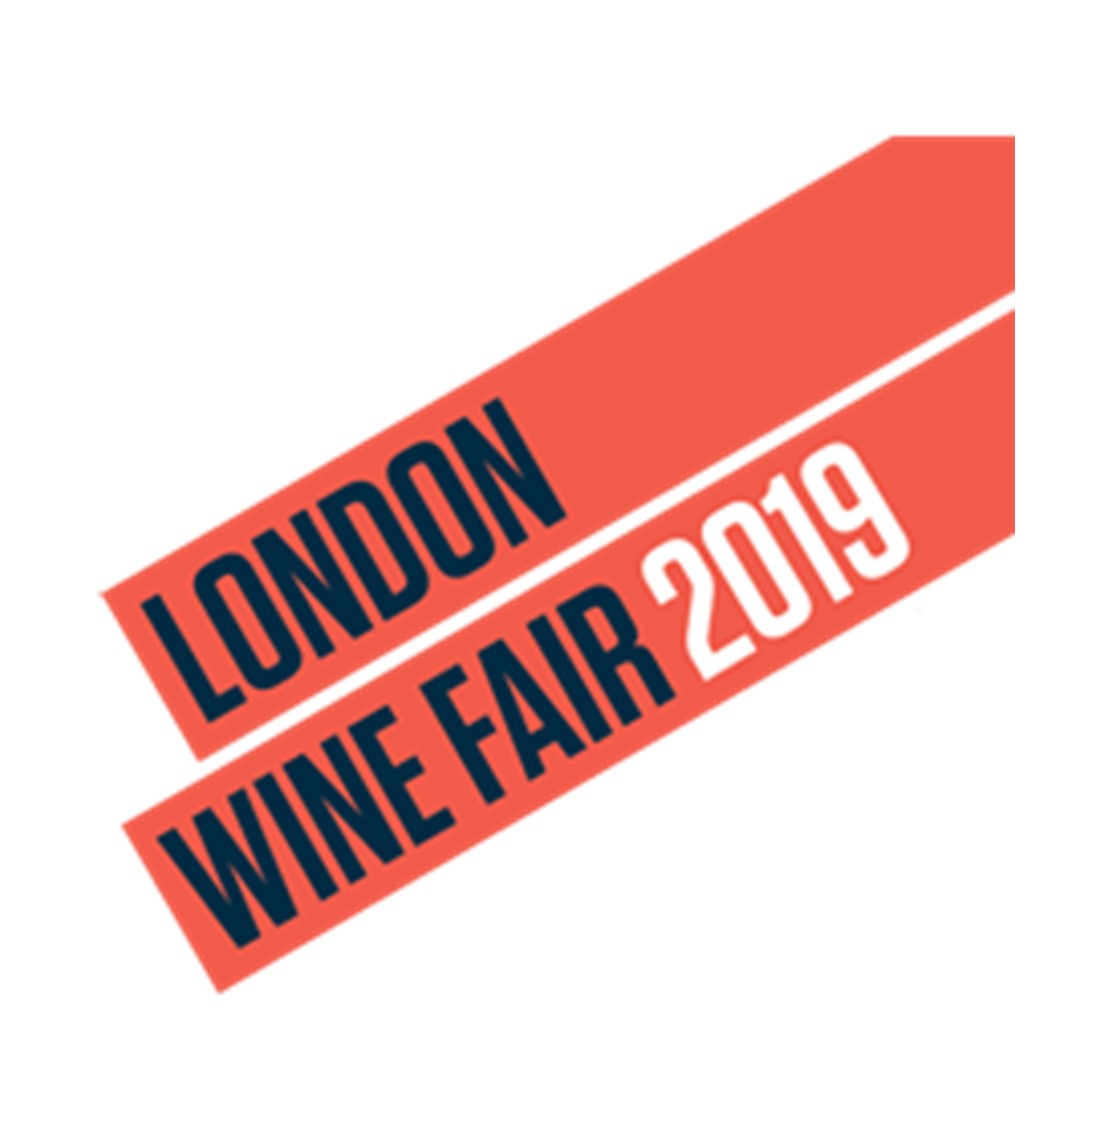 London Wine Fair - Events